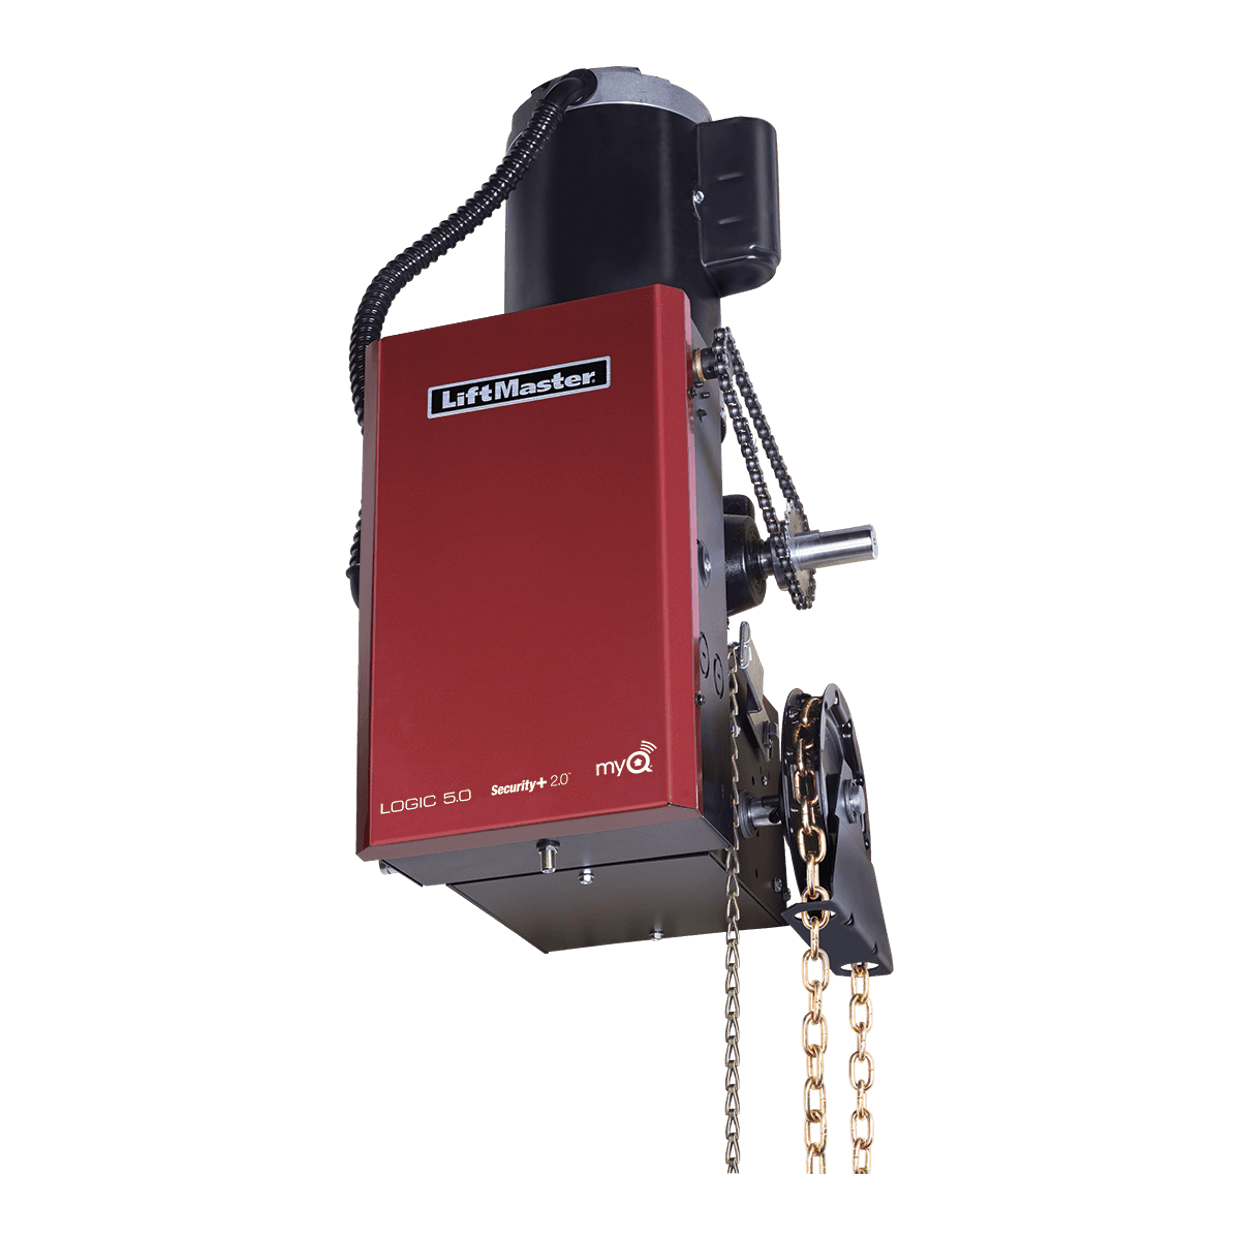 Heavy Duty Gear Reduced Hoist Door Operator